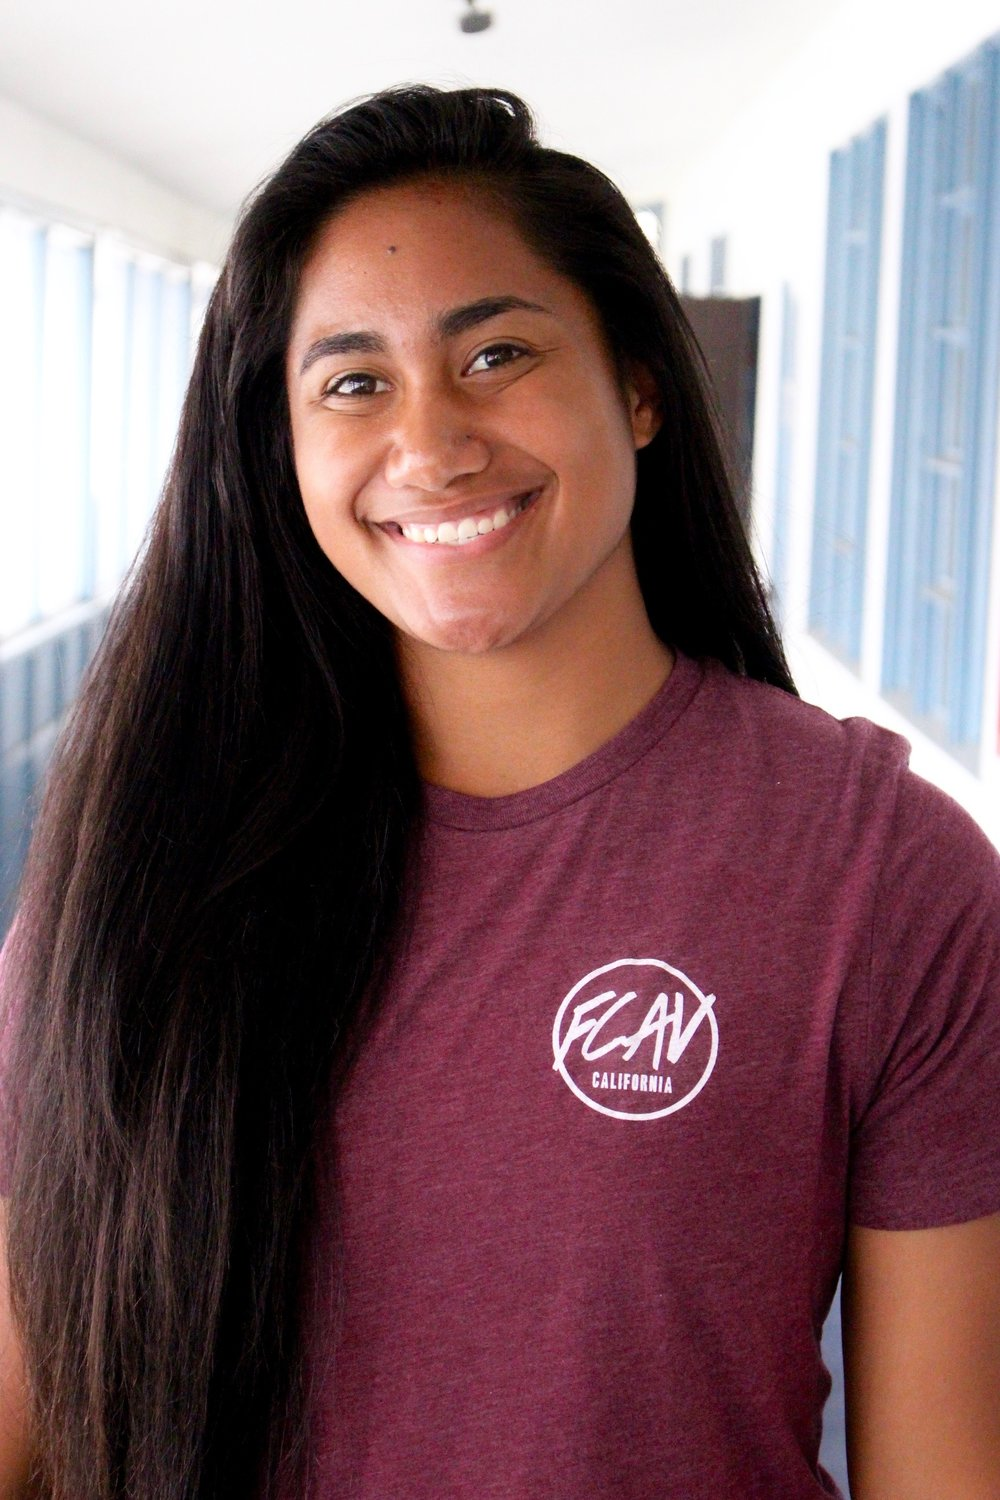 Nani Leui-Saole Nomura - Hey! I'm Nani (pronounced naw-knee), and I kind of played volleyball at Louisiana Tech University from 2015-2017. I was in school studying Psychology and am now pursuing a career in law enforcement, looking forward to spending the next years serving people as my profession and seeking justice for those in need of it. I love reading, I think Forrest Gump is the best movie ever made, and I can juggle pretty well on a good day.